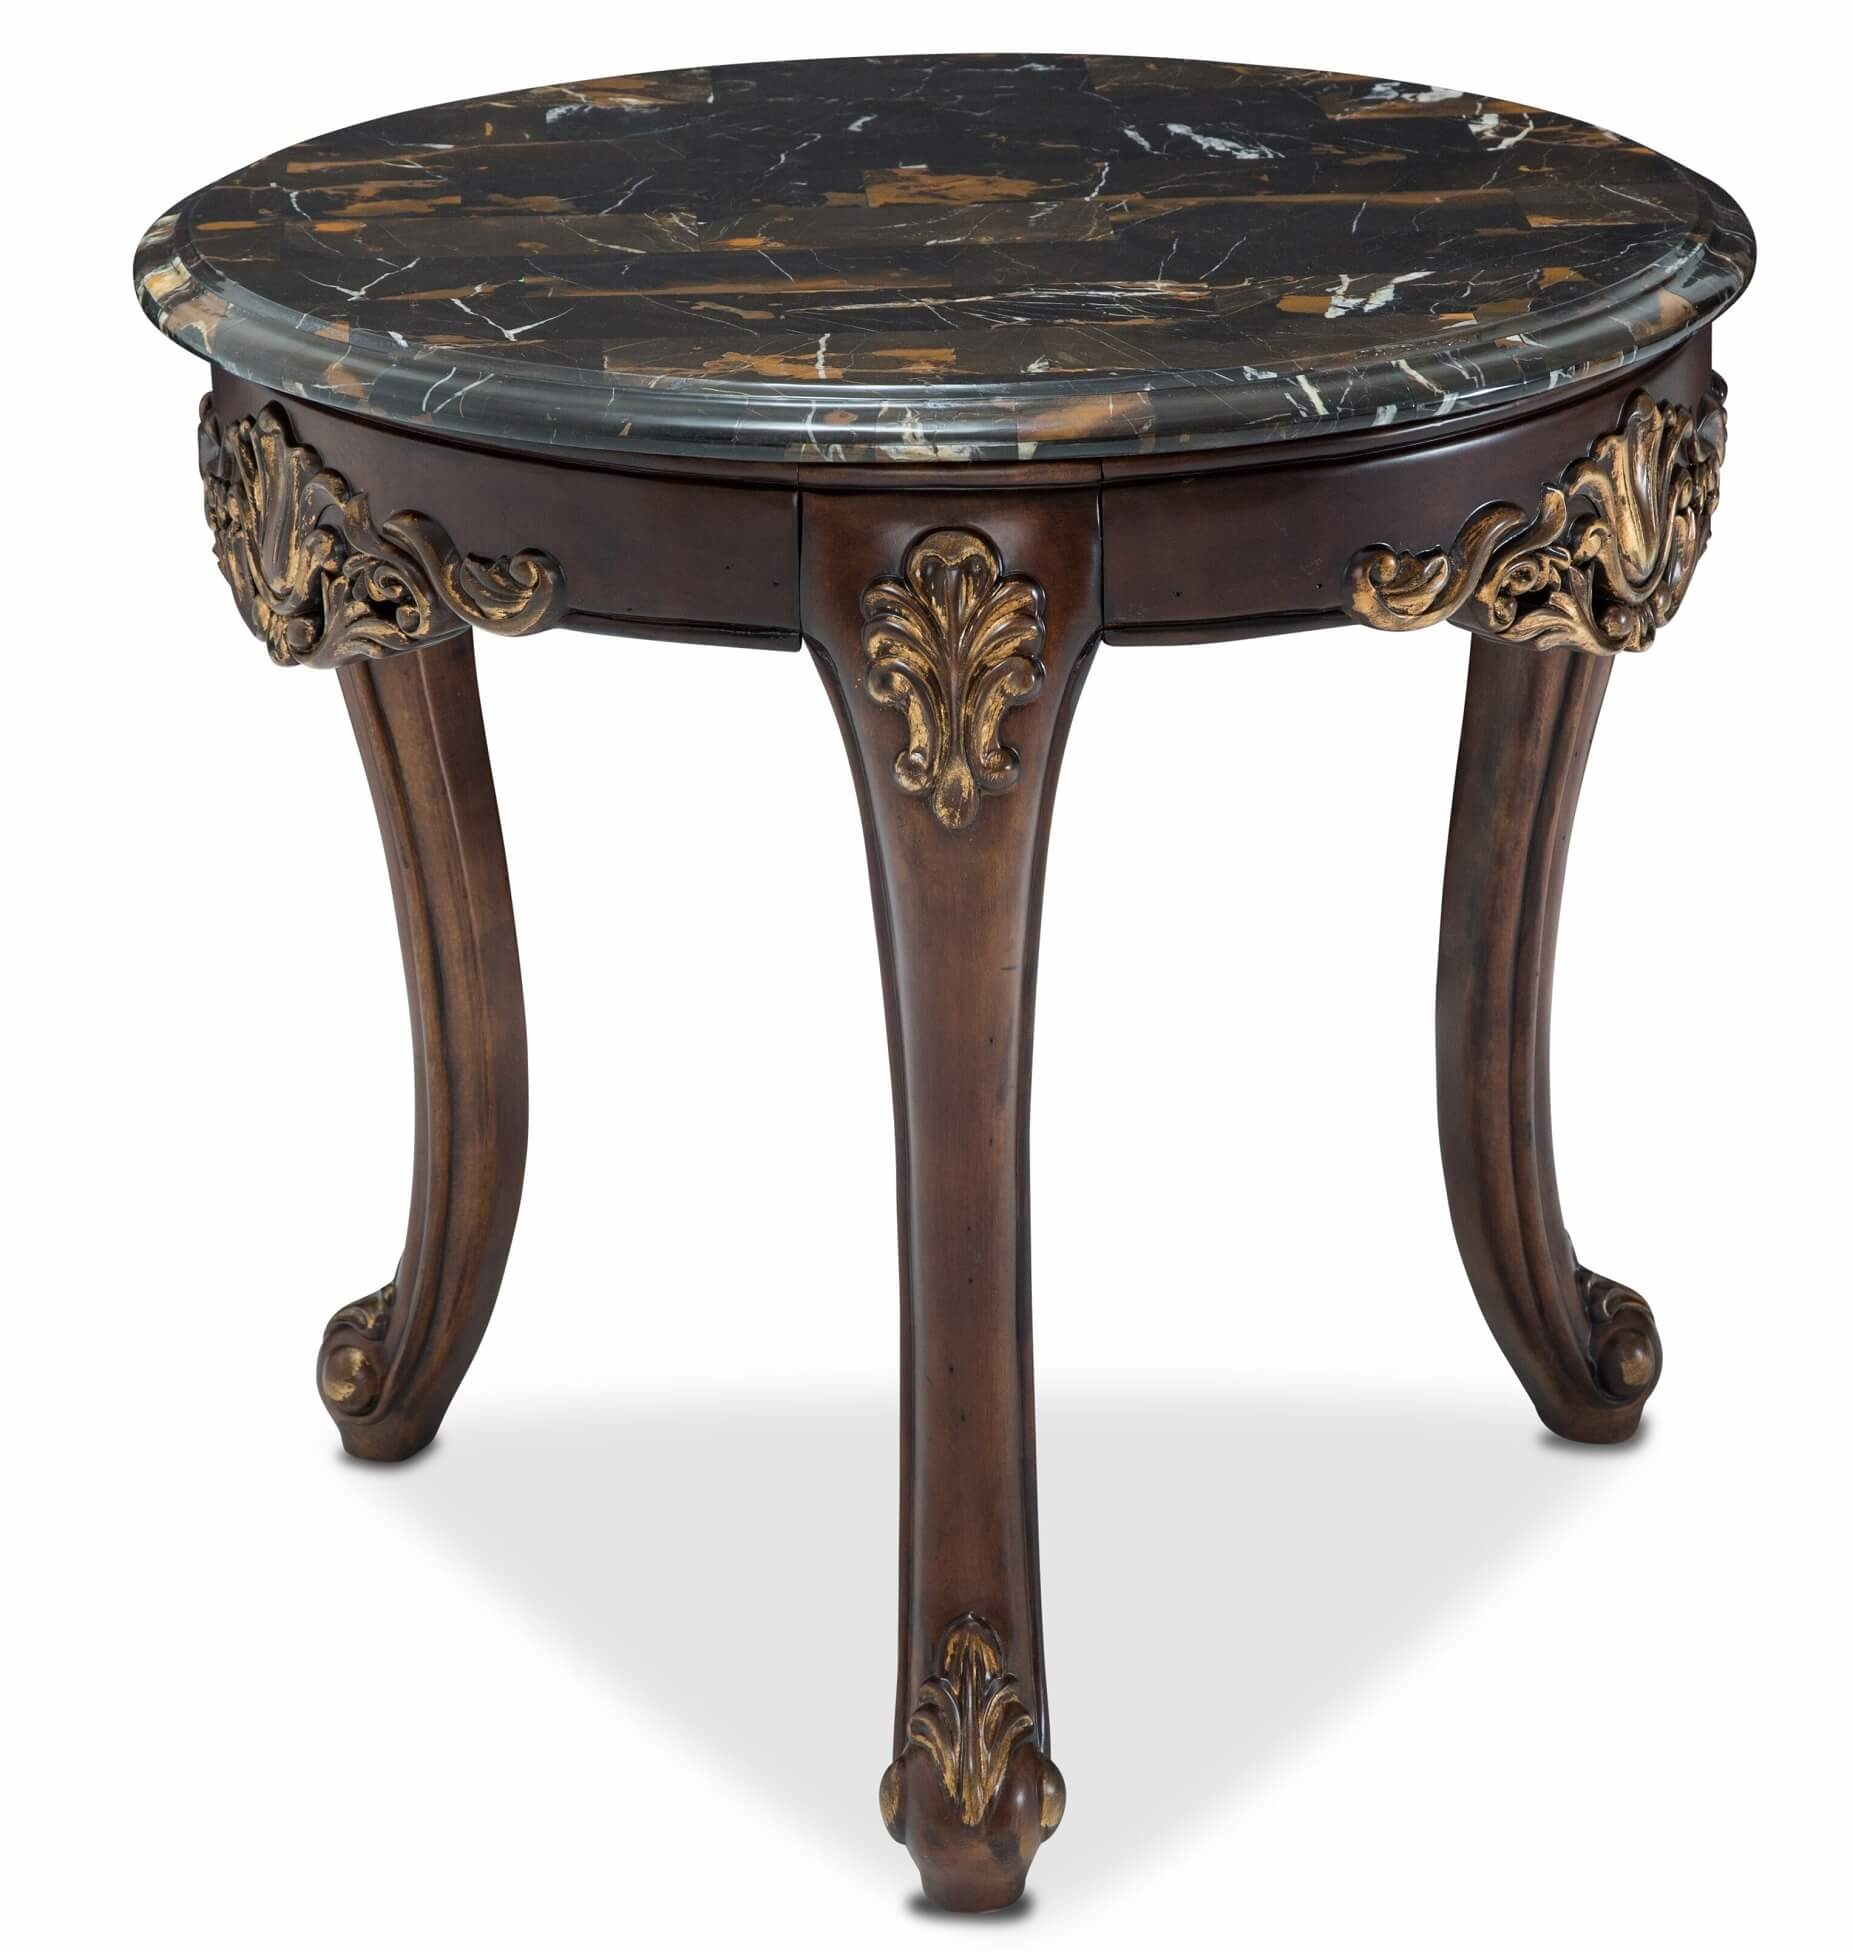 aico villa como round marble end table portobello finish hallway target scalloped accent furniture tables copper drum live wood gold and glass console outdoor umbrella hairpin